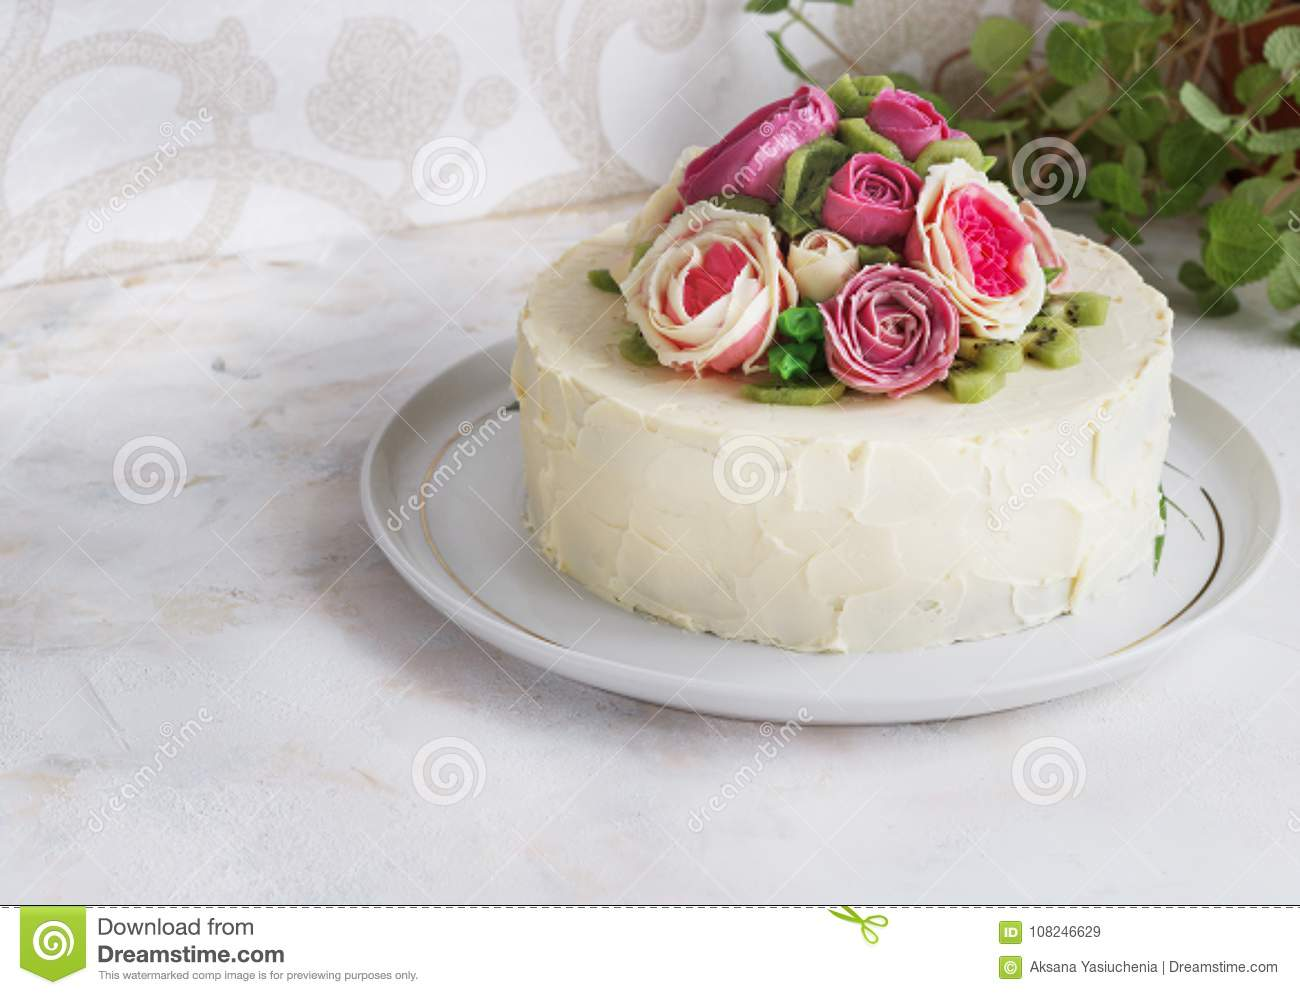 Birthday cake with flowers rose on white background stock image birthday cake with flowers rose on white background izmirmasajfo